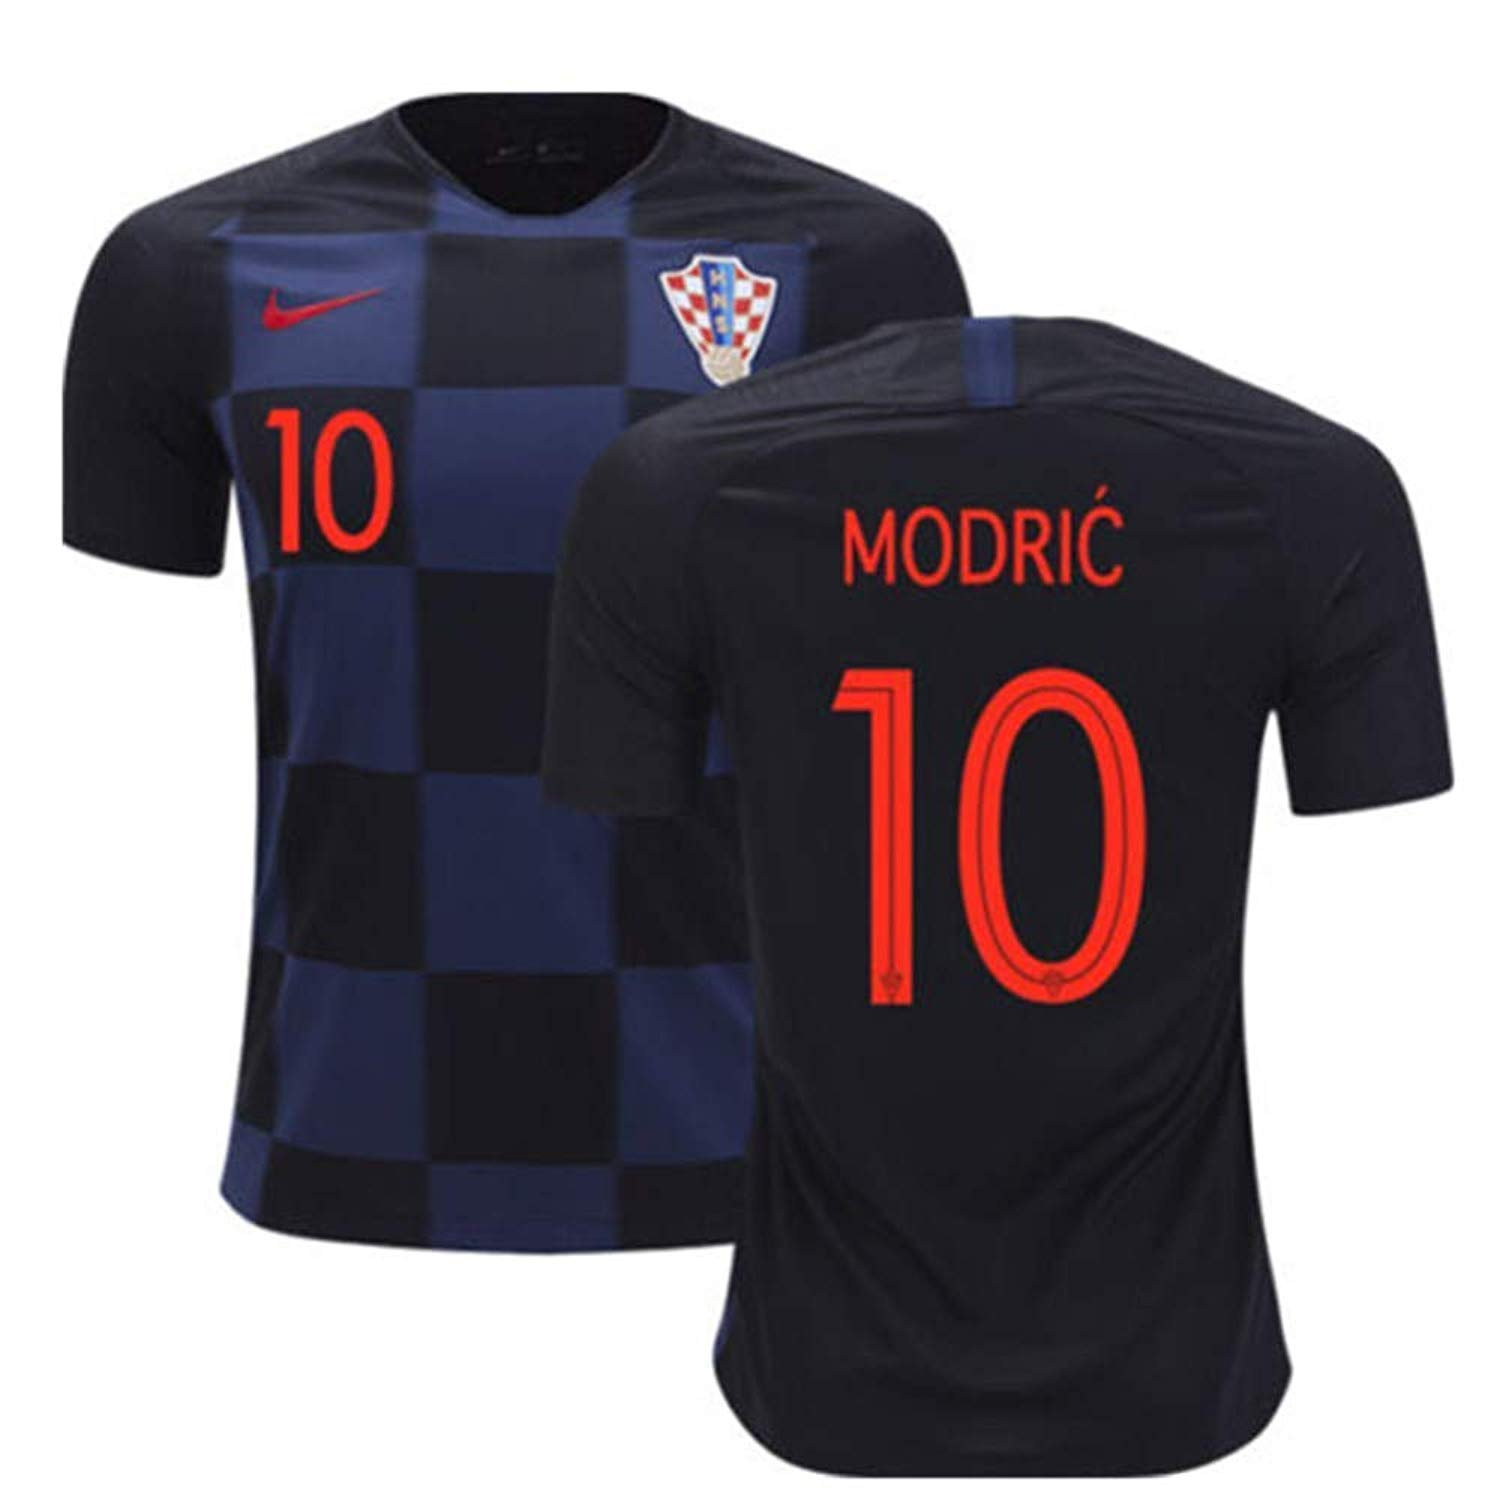 brand new 52e6d df8a2 AdriK Brand 2018 World Cup Croatian National Team Away Modric Men's Jersey  - Soccer Jerseys,Soccer Jersey 2018,Soccer Jersey Men